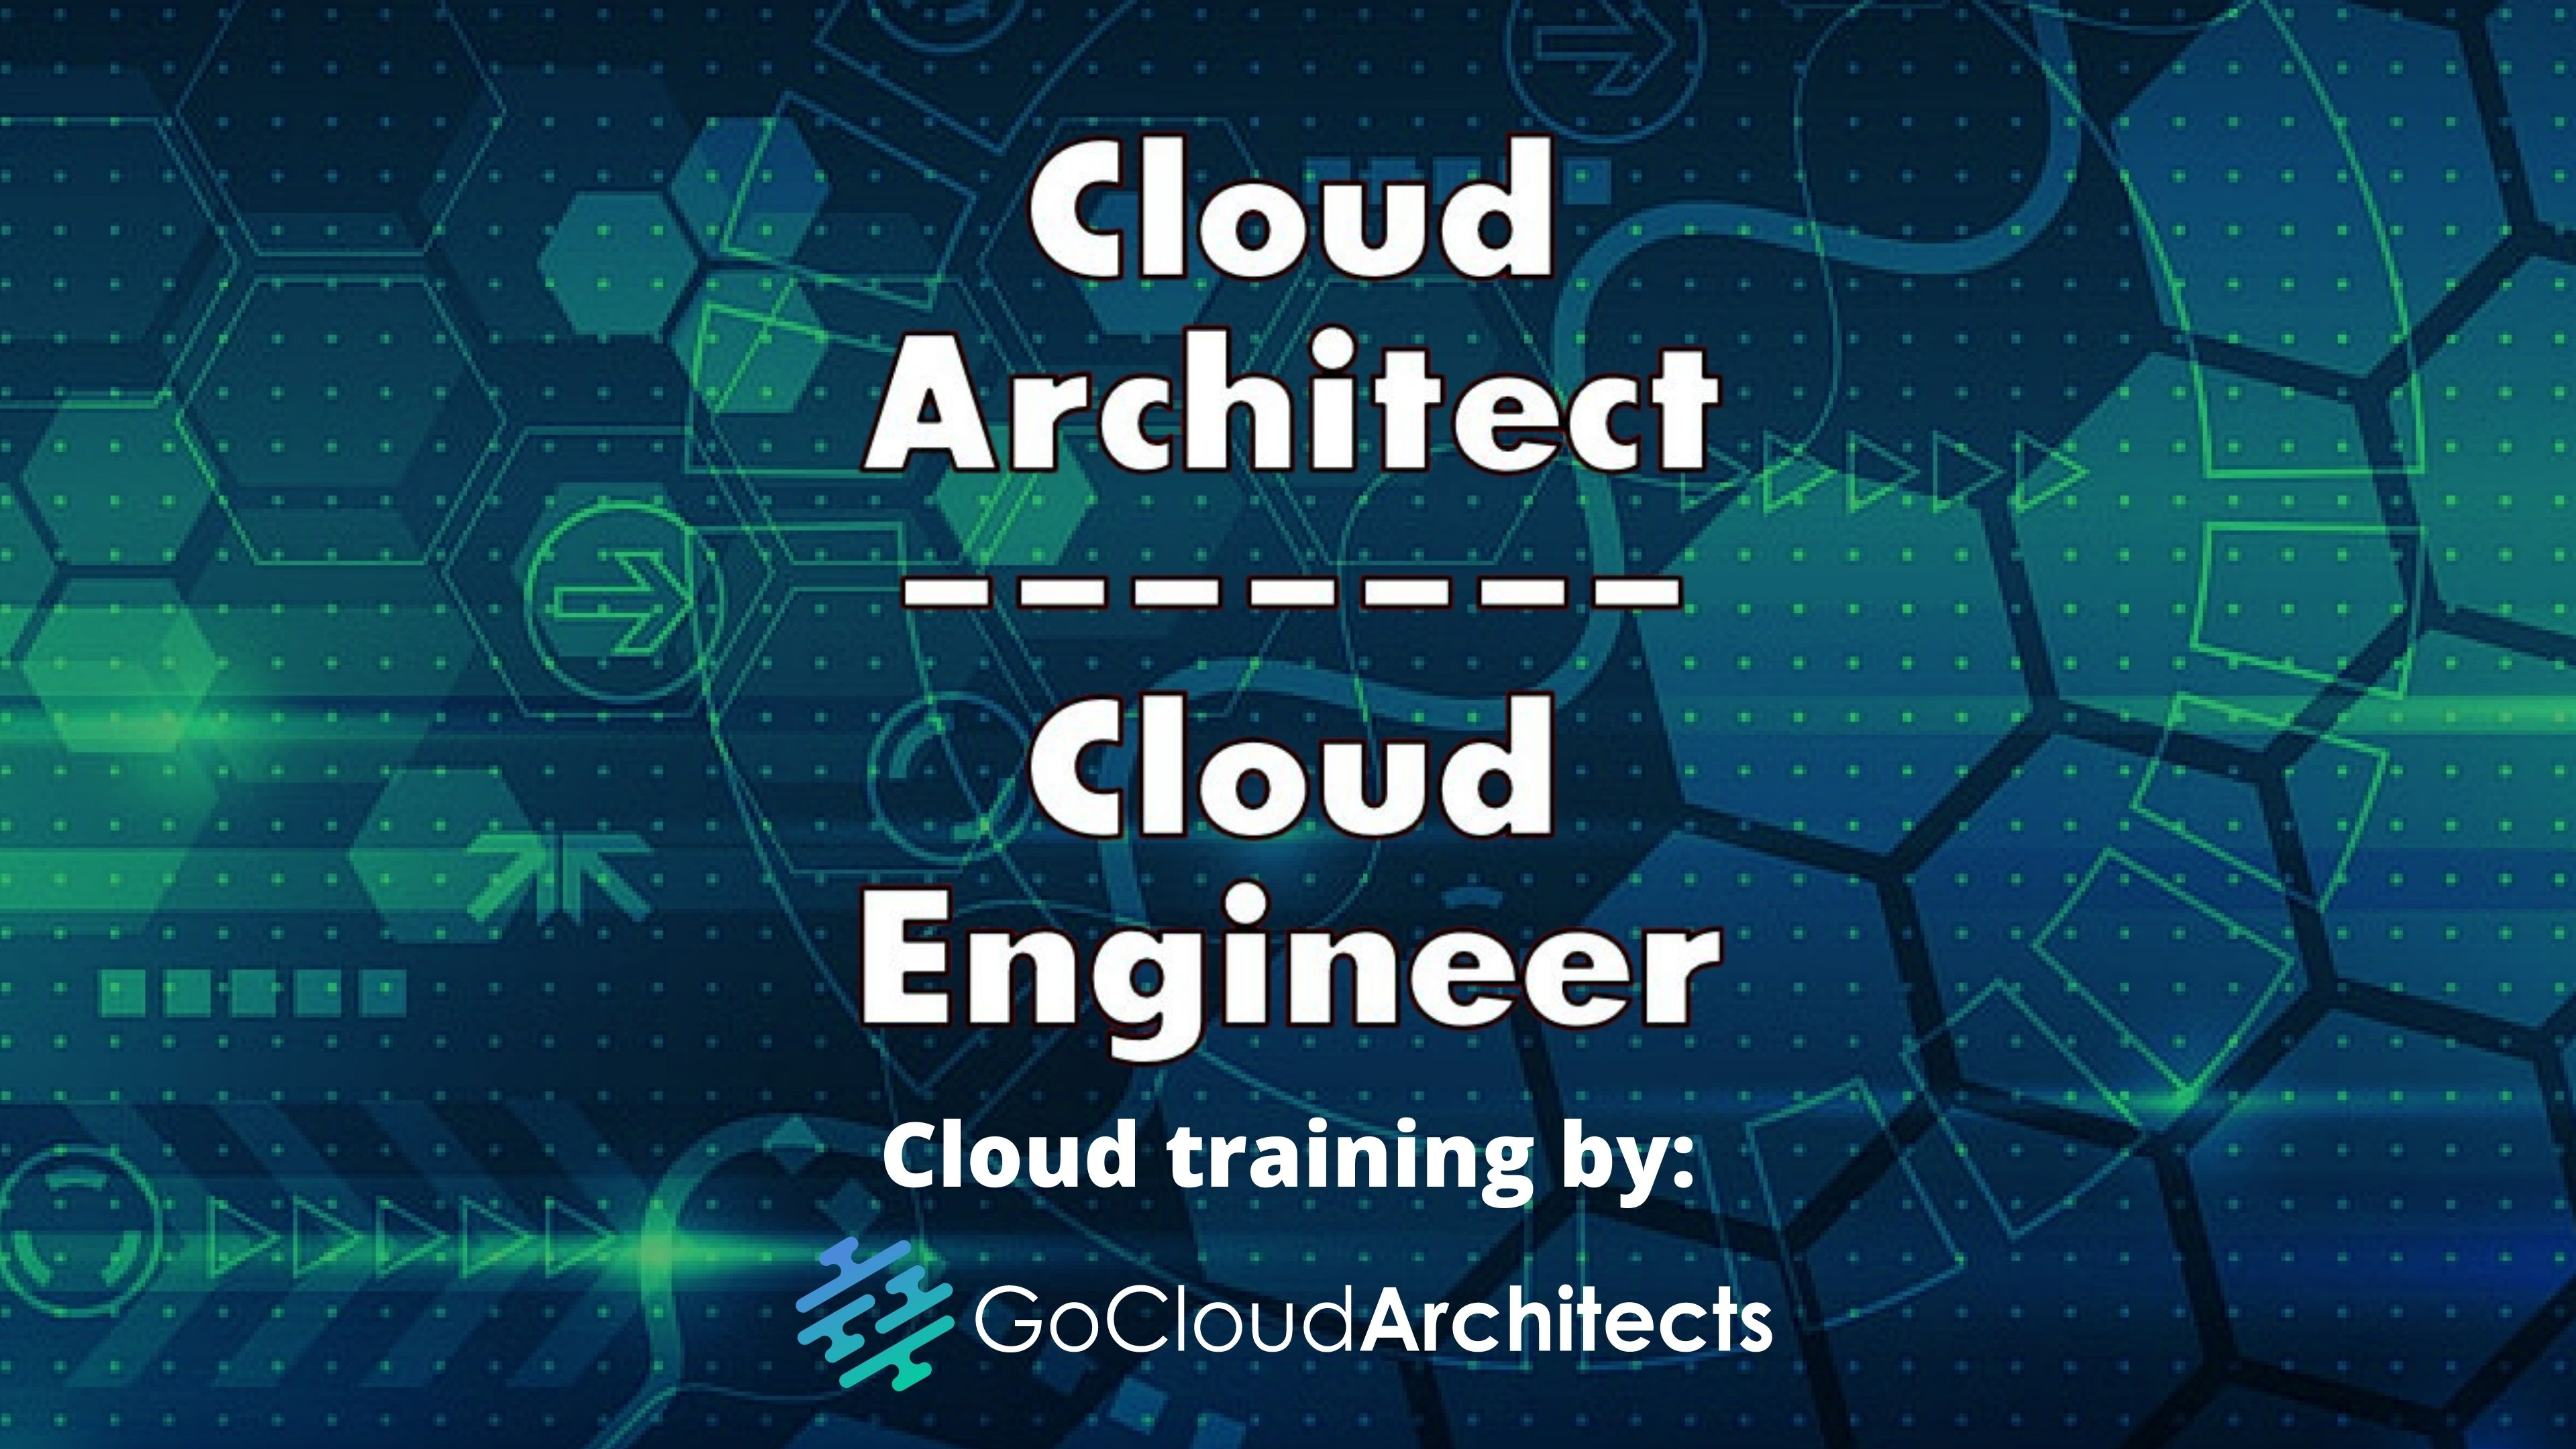 cloud architect and cloud engineer